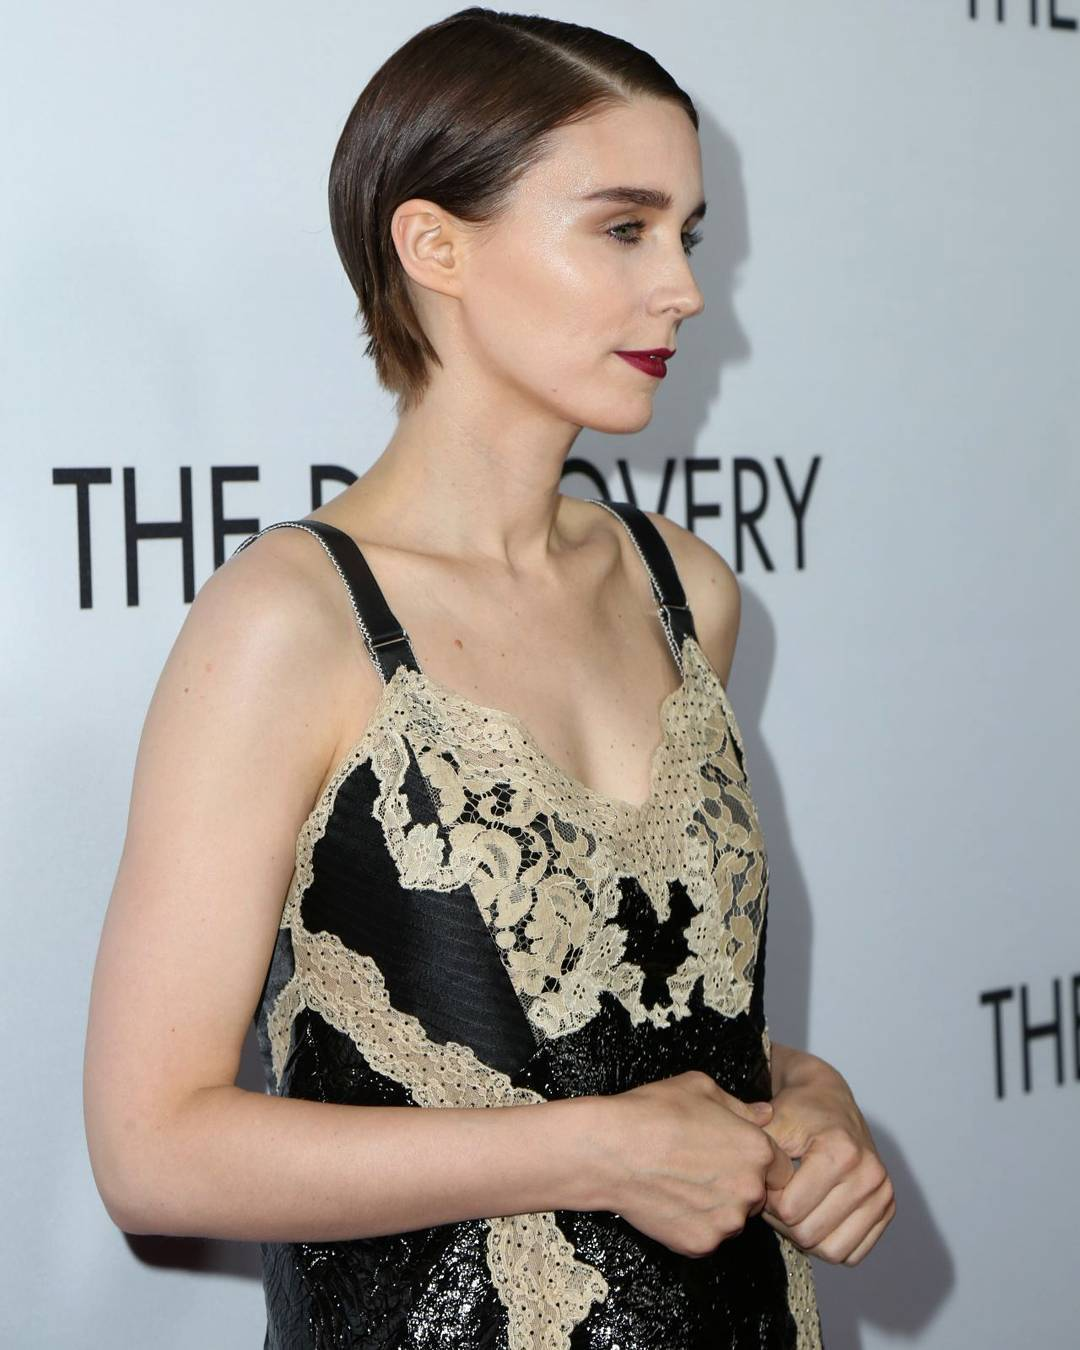 Rooney Mara hot lady photo